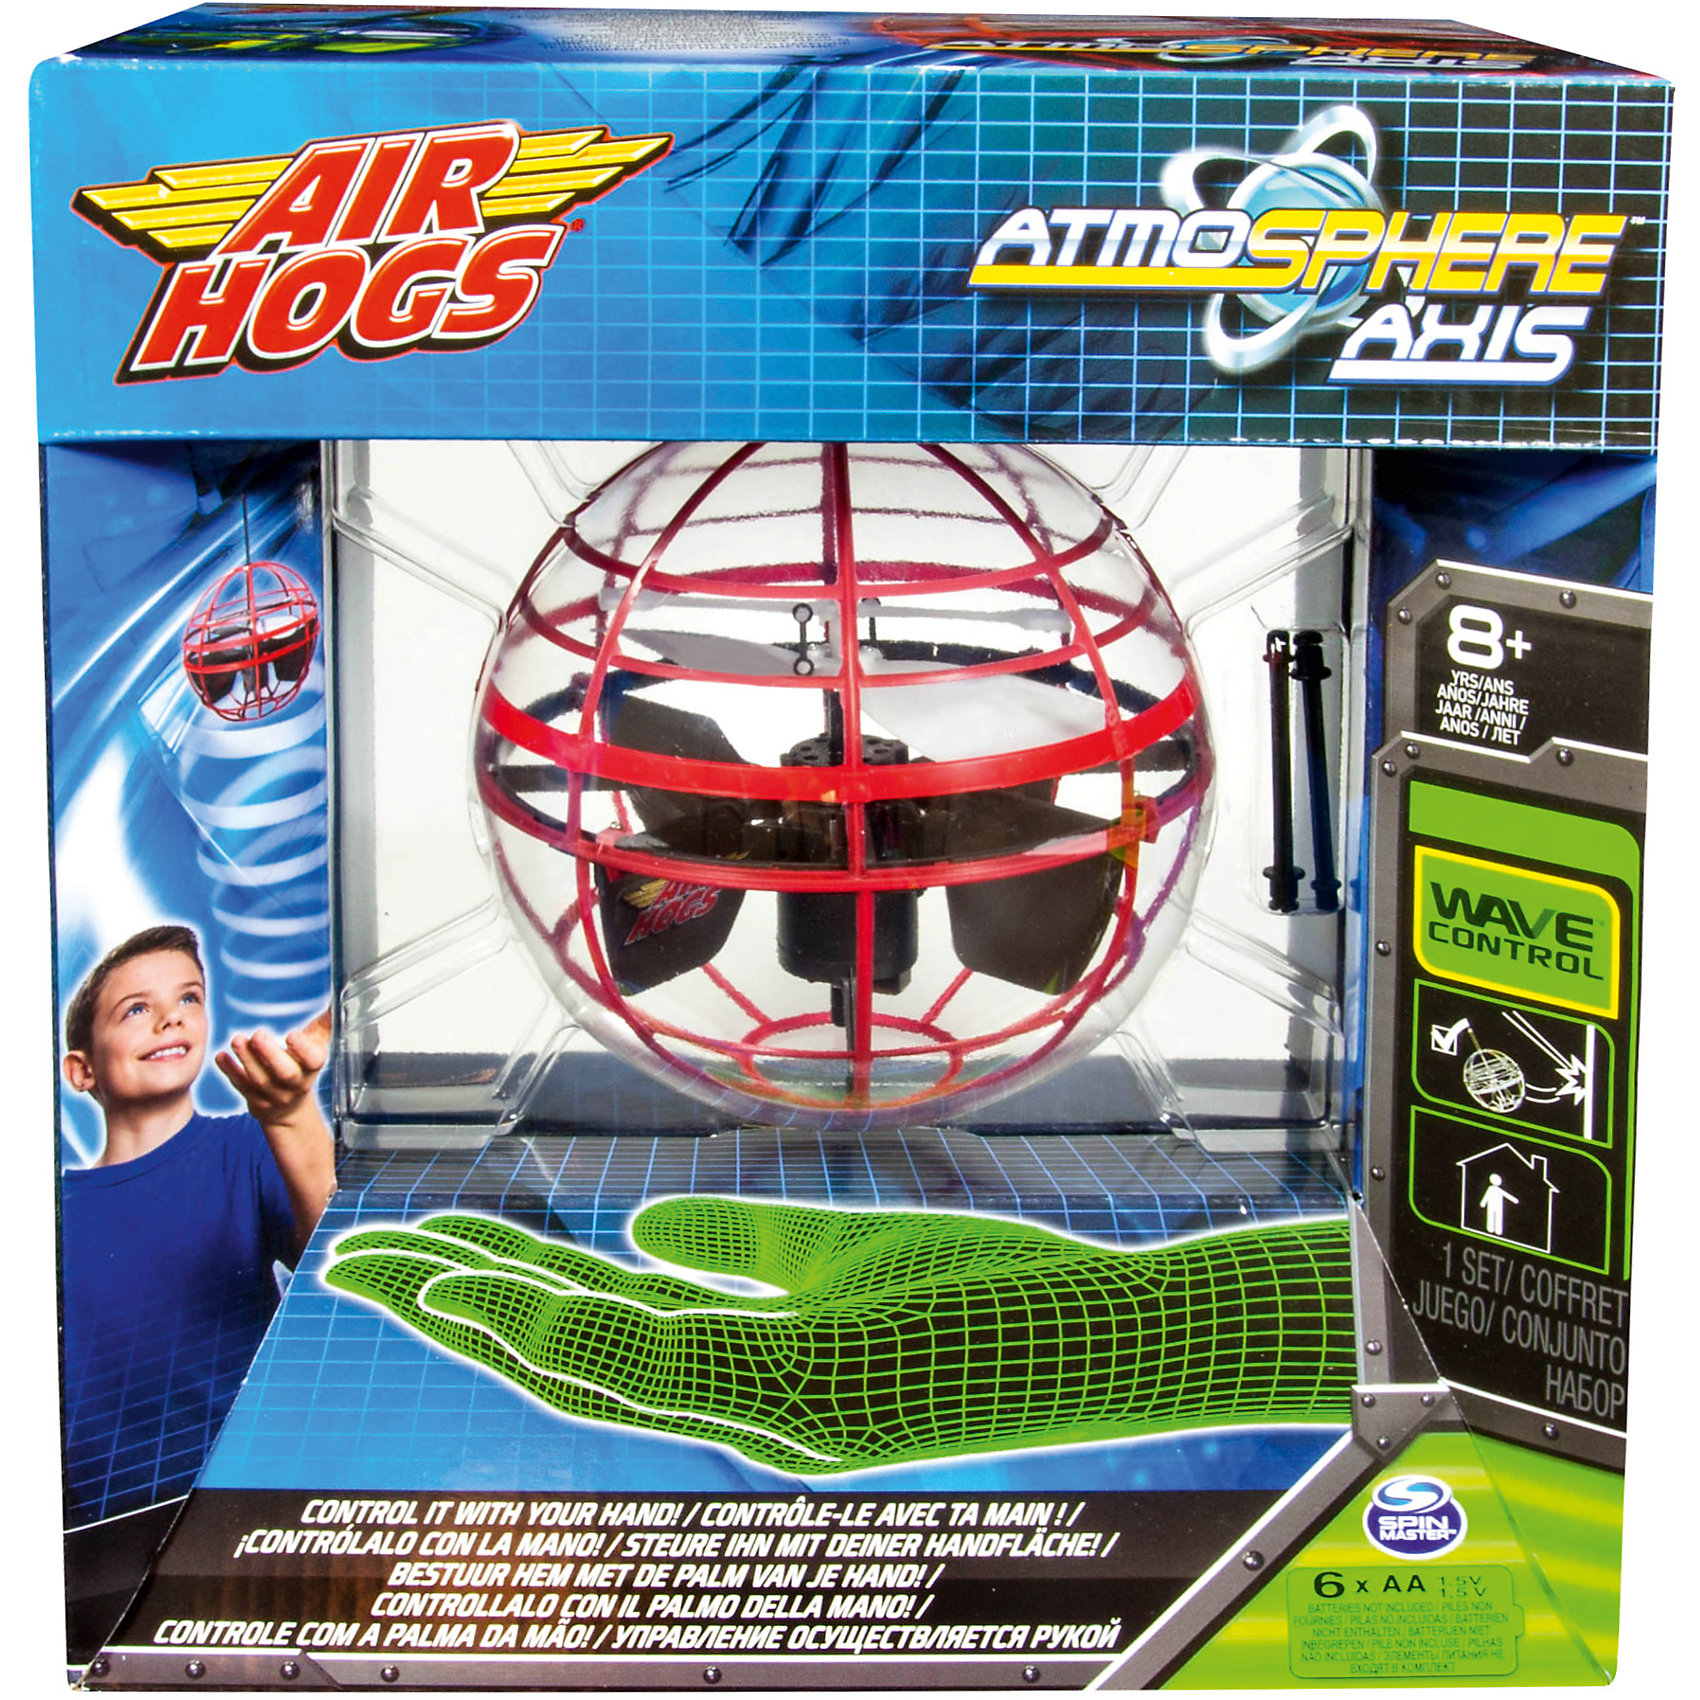 ������� ��� �������� ���, AIR HOGS, 44475/20063615 (Spin Master)